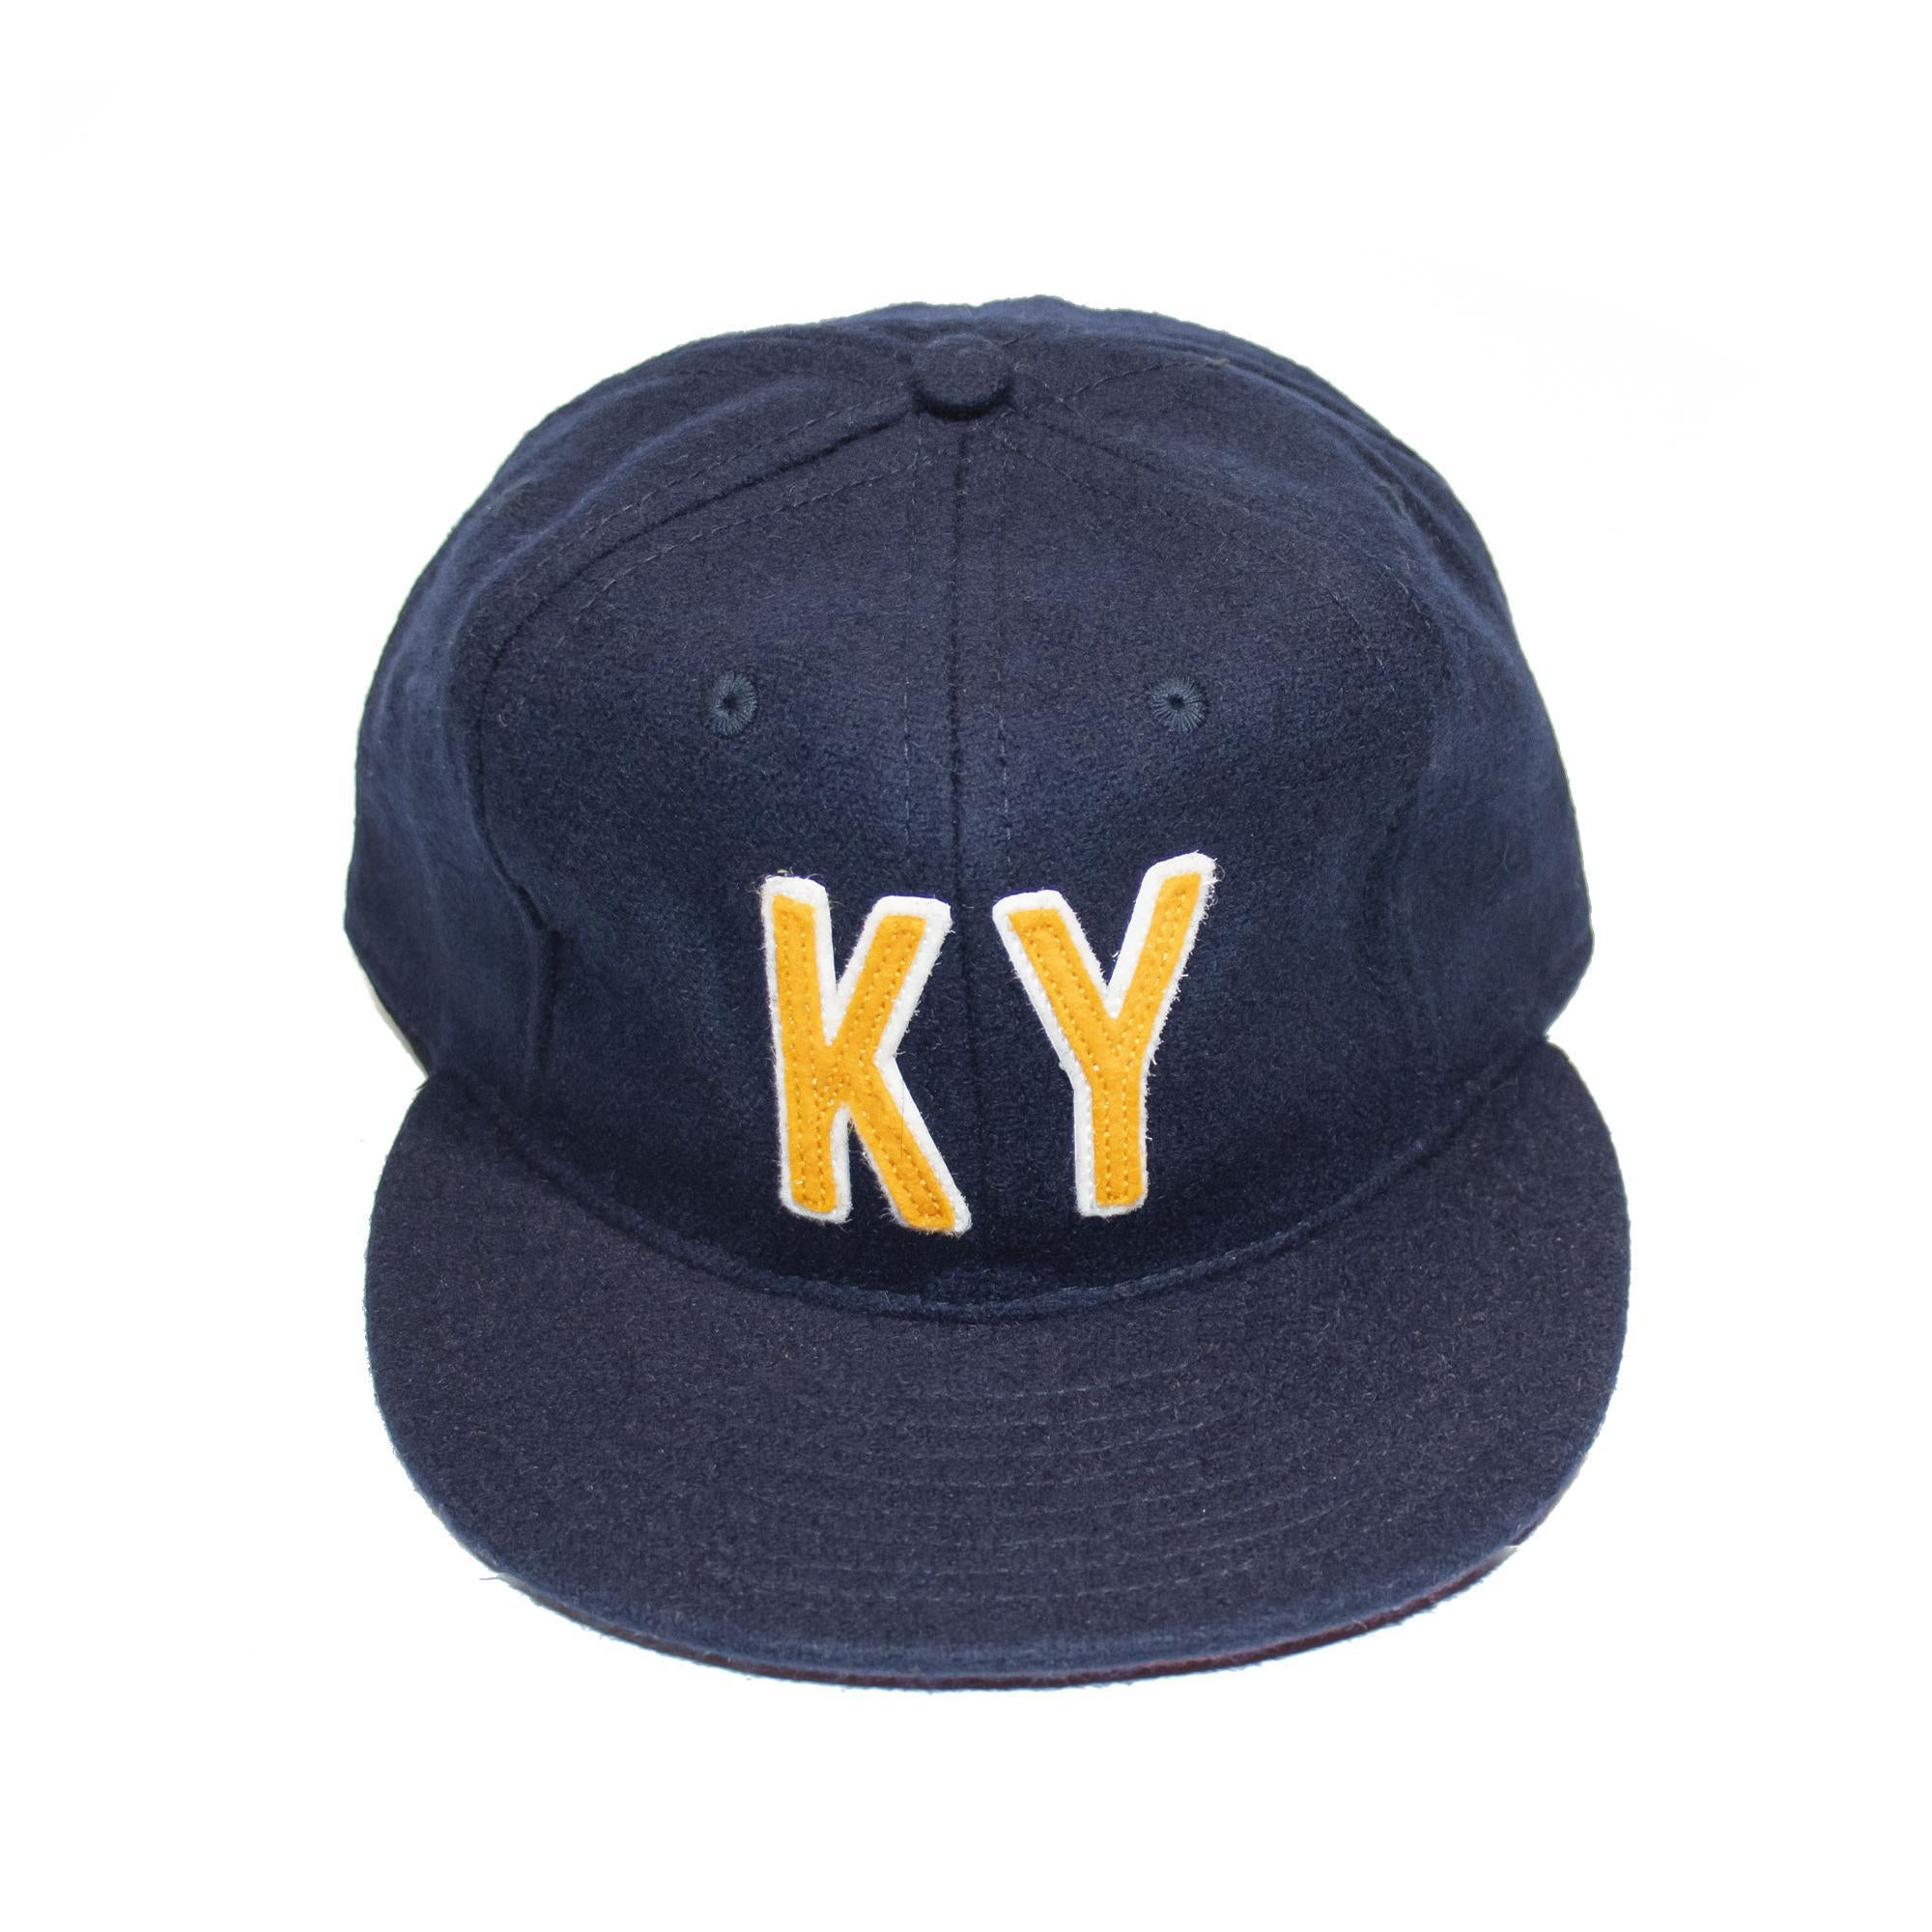 KY Ebbets Hat (Navy and Gold/White)-Hat-KY for KY Store